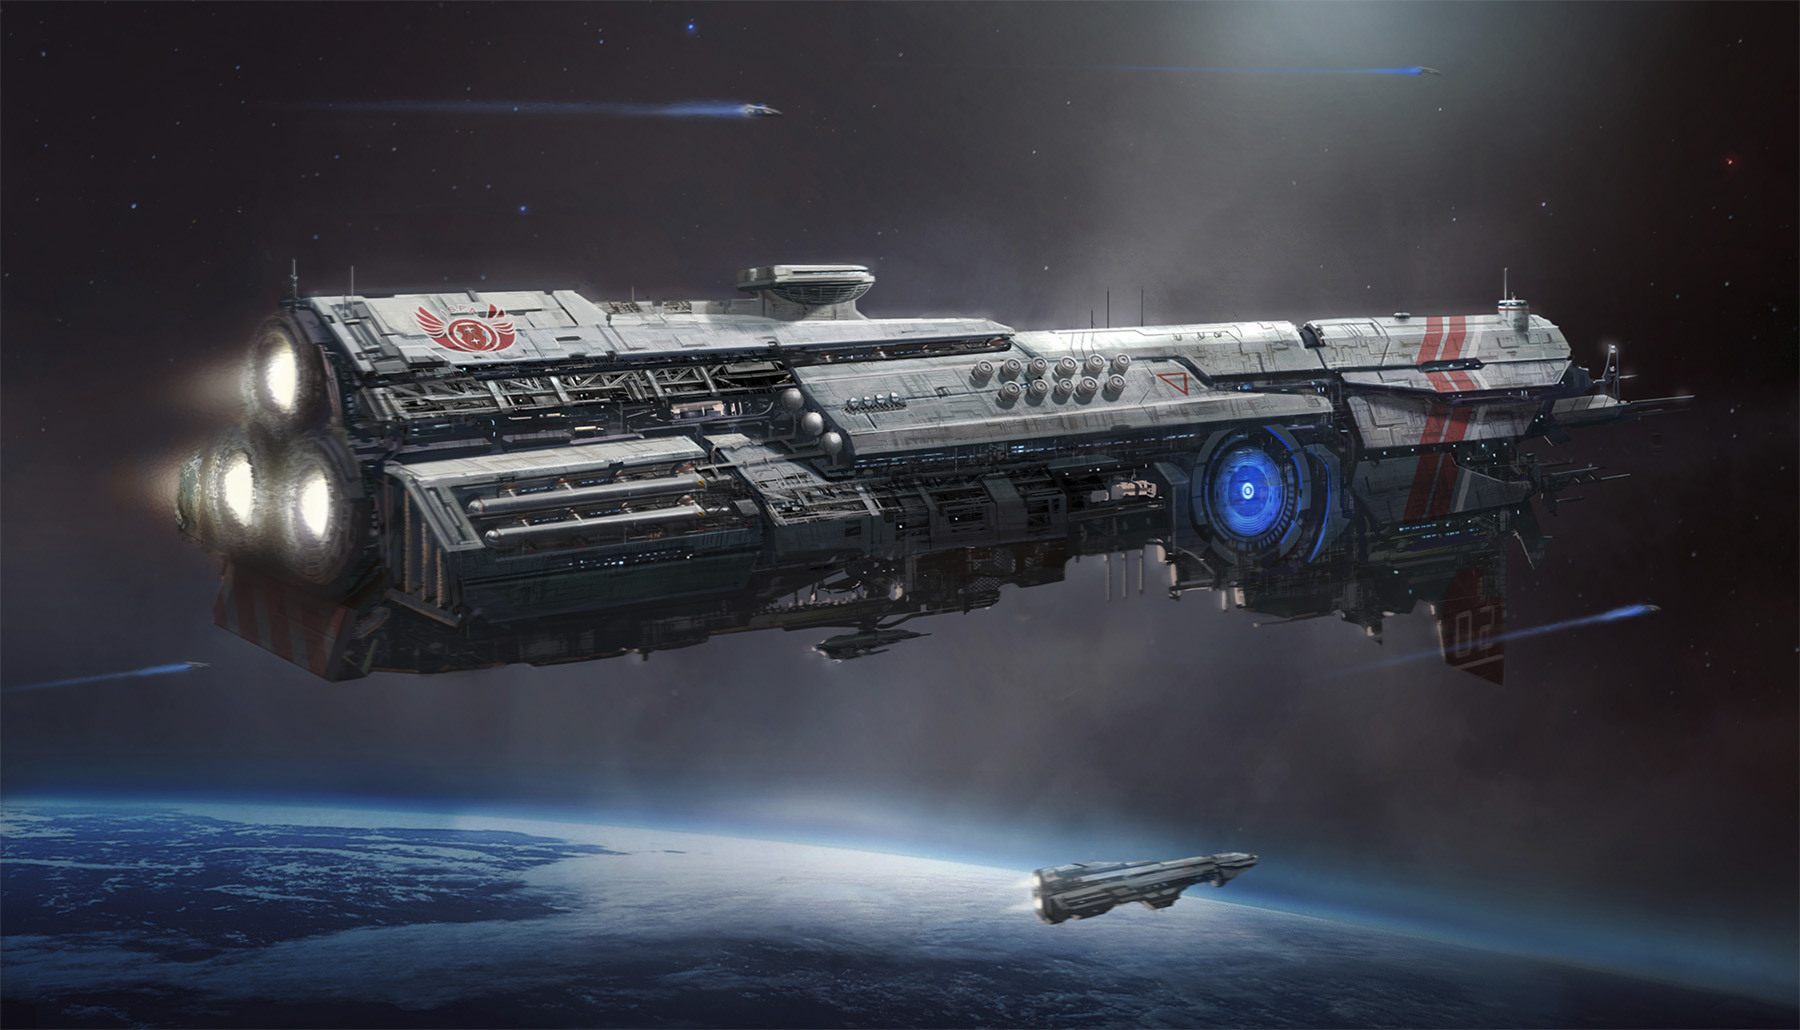 concept ships: I.S.F.A. Battle Cruiser by Antonio Jacobs